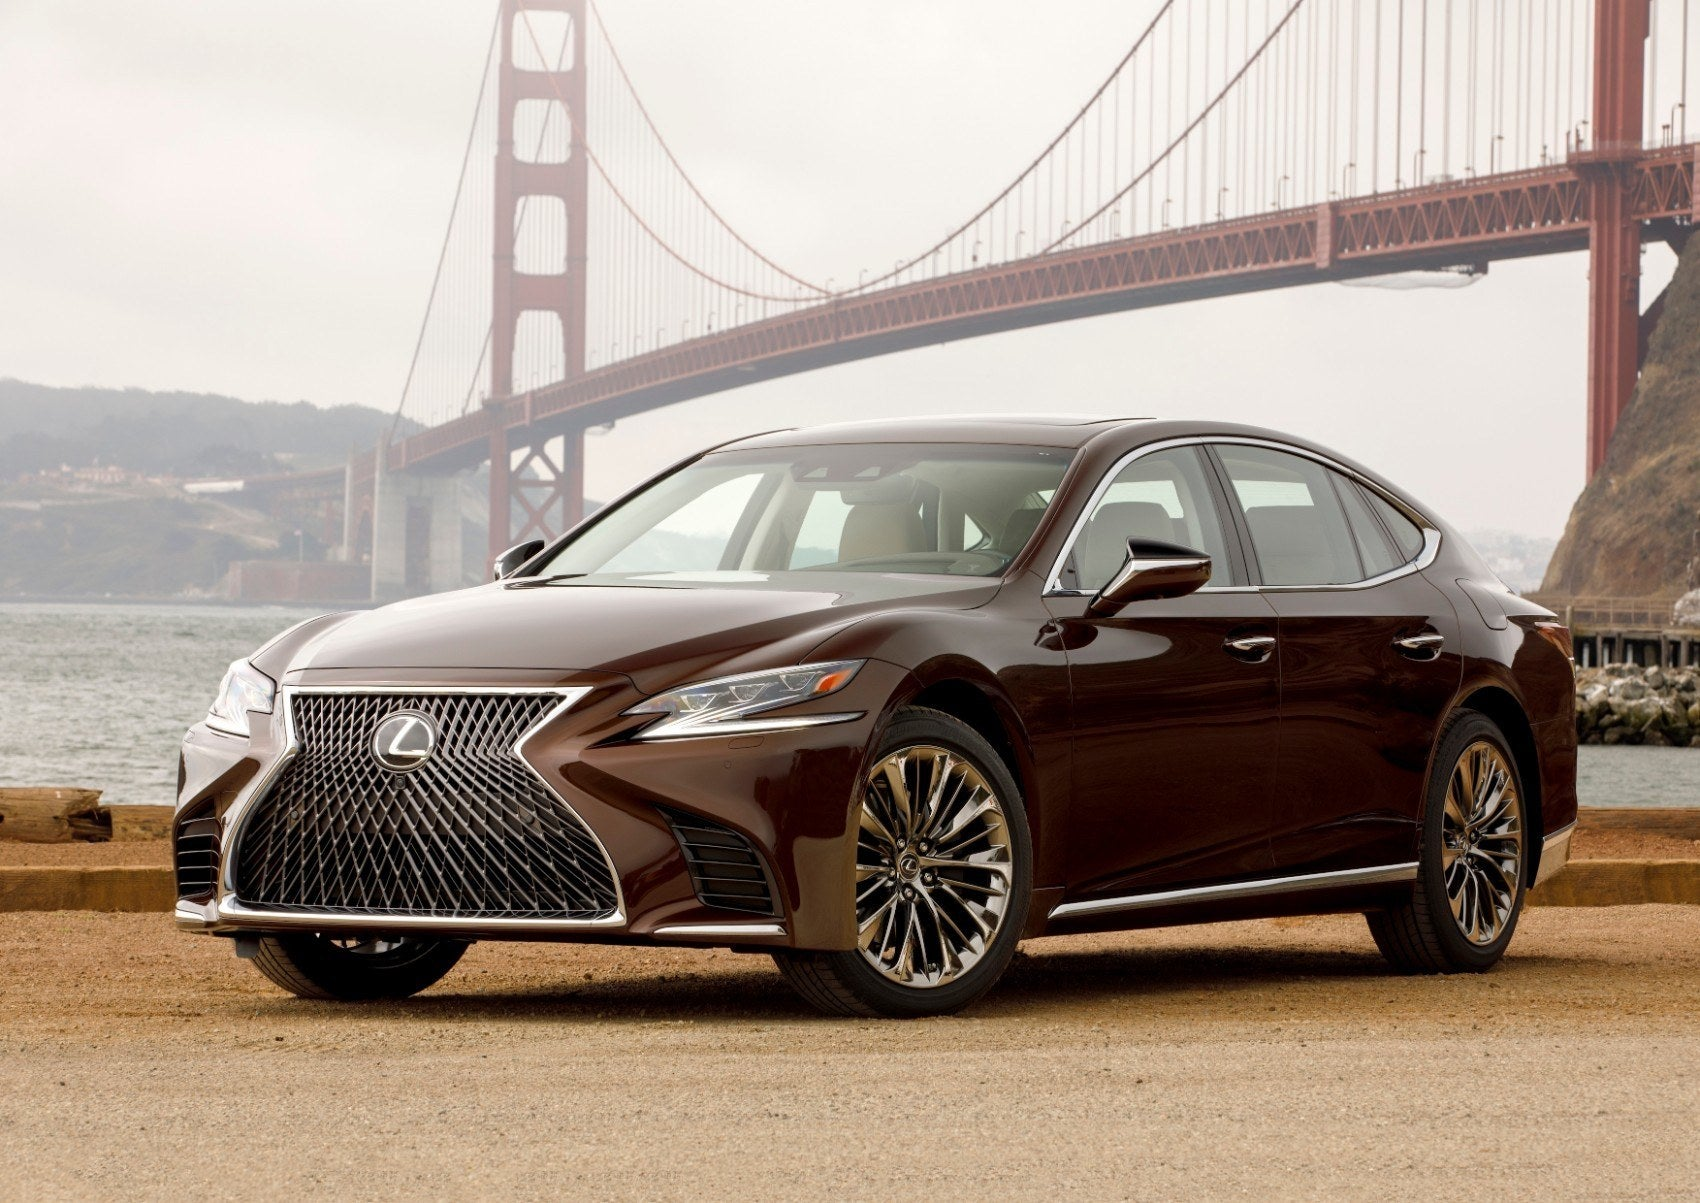 2020 Lexus LS 500 Review: Does The Price Justify This Luxury Cruiser? 18